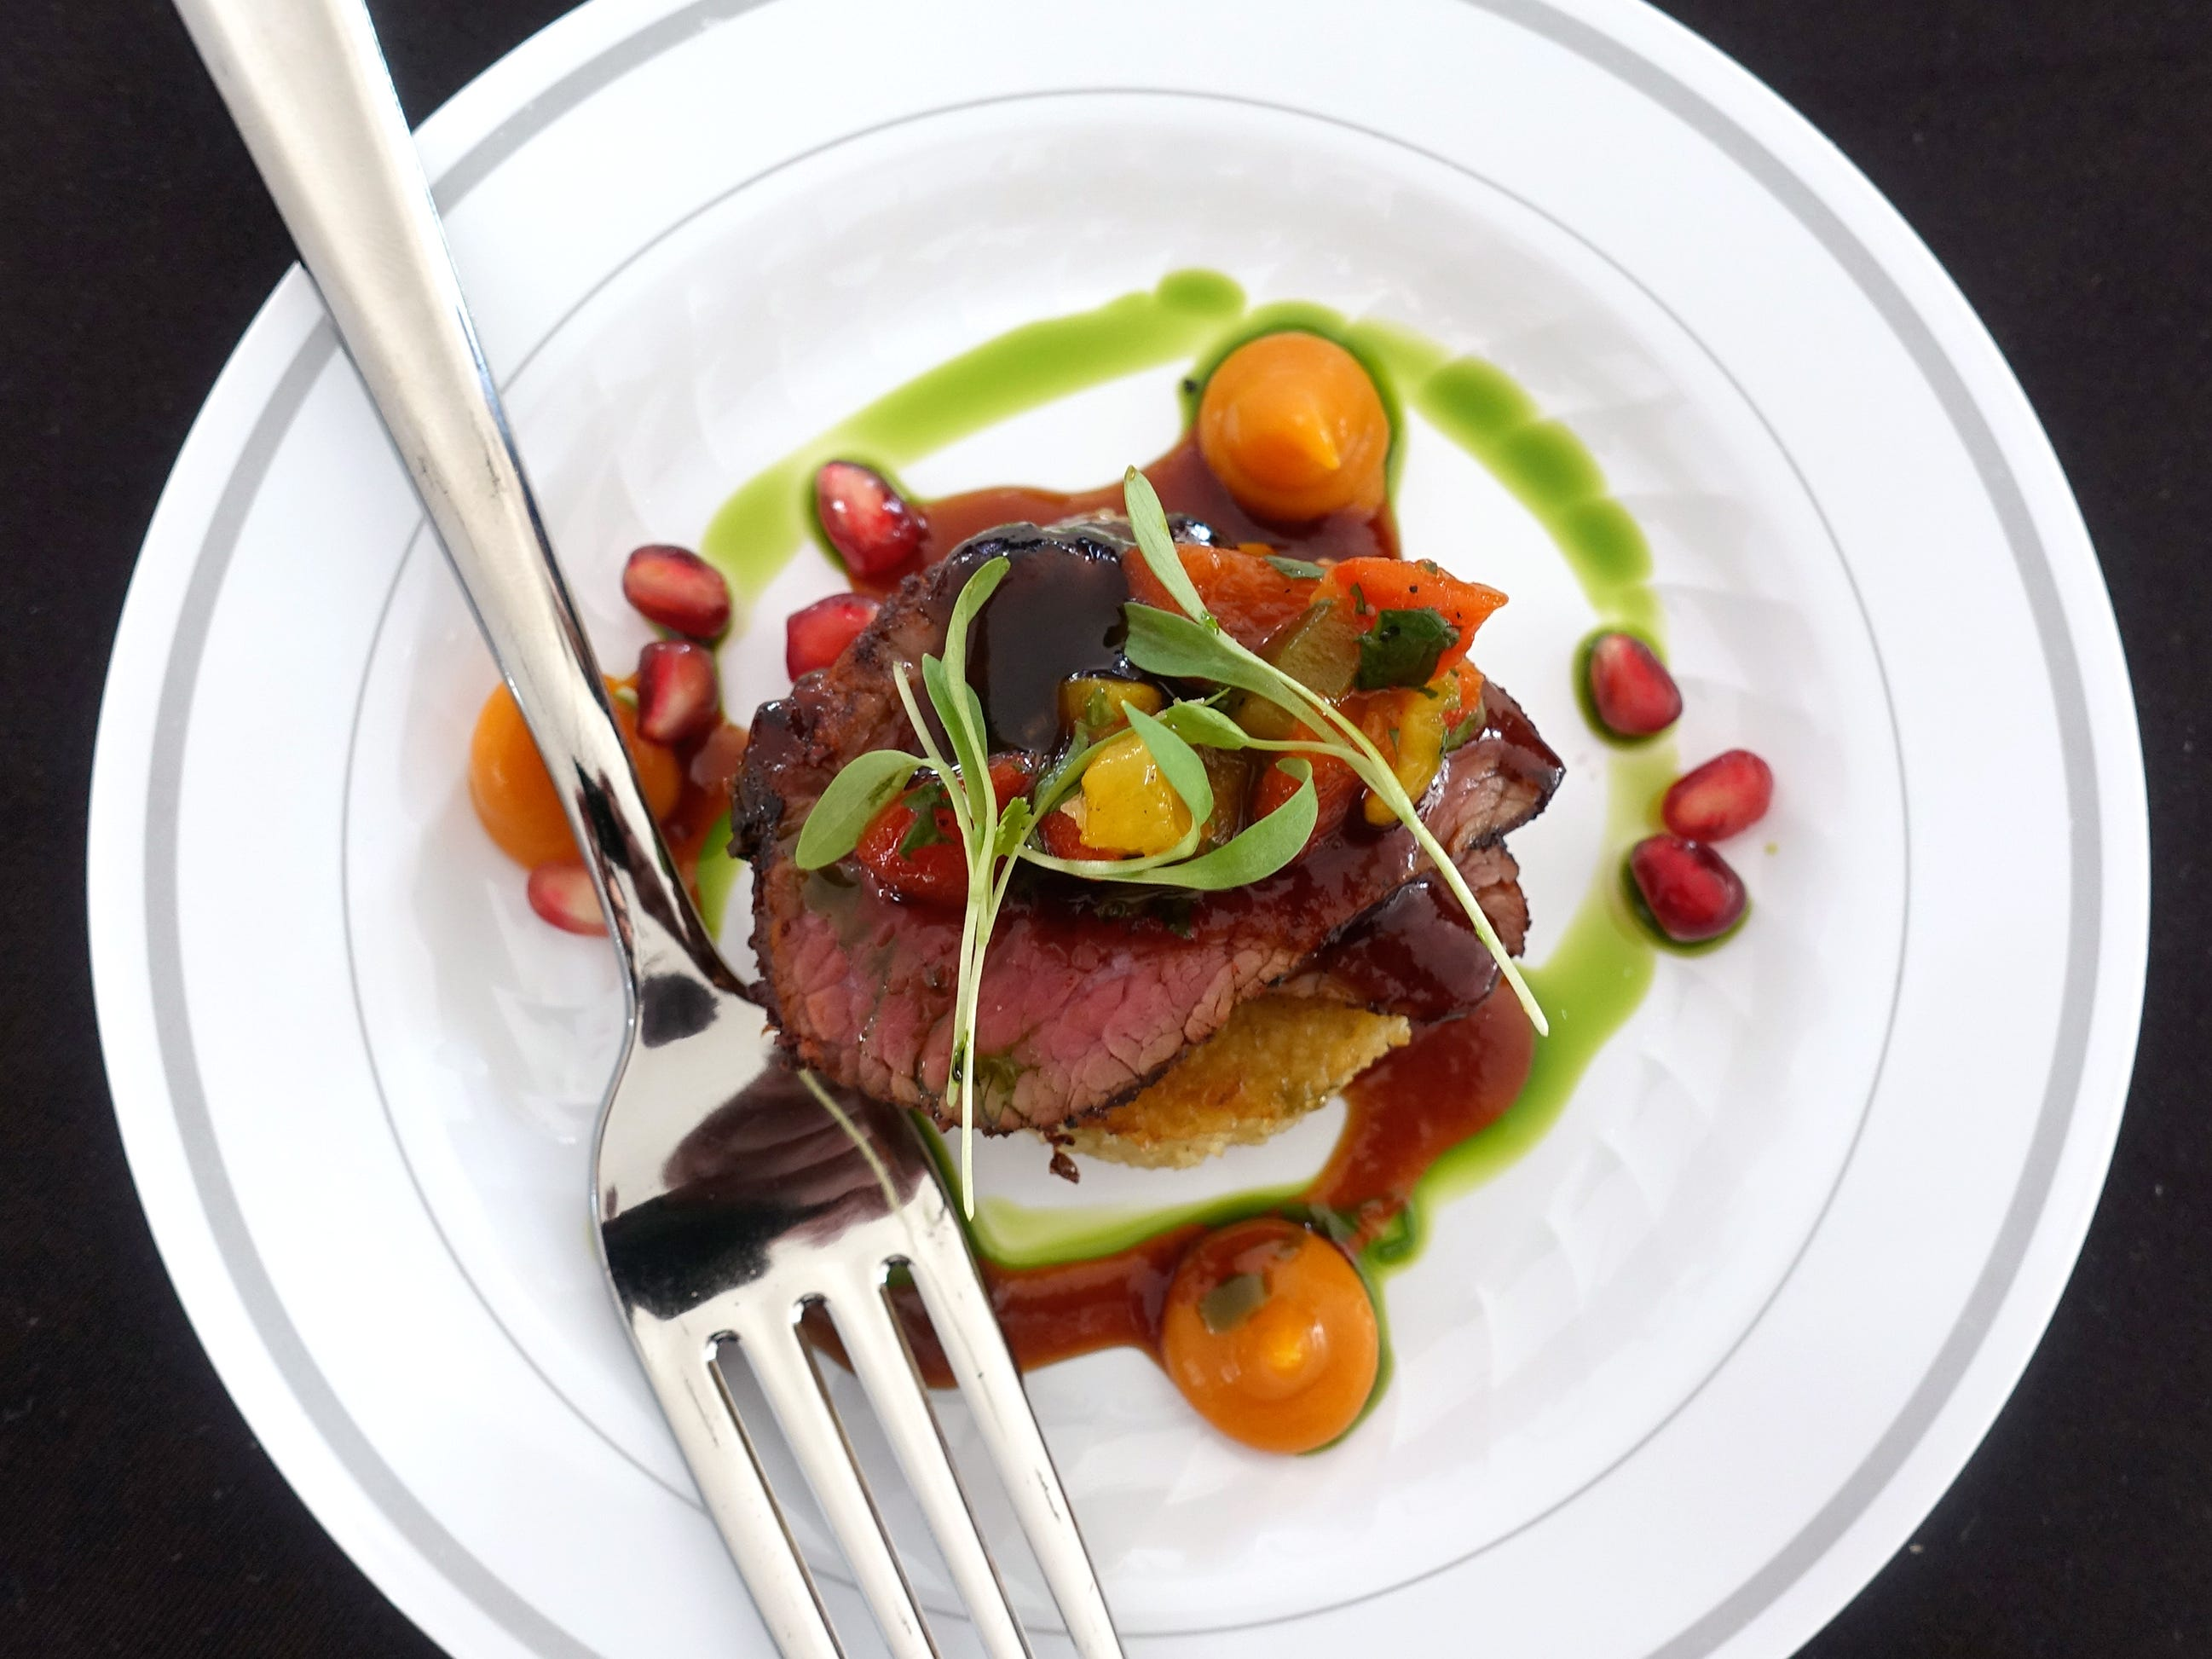 Aleppo grilled bison steak with green chile and cheddar polenta cake, smoked maple sweet potato puree and pomegranate port reduction from Different Pointe of View at azcentral Wine & Food Experience 2018 at WestWorld of Scottsdale, Sunday, Nov. 4, 2018.